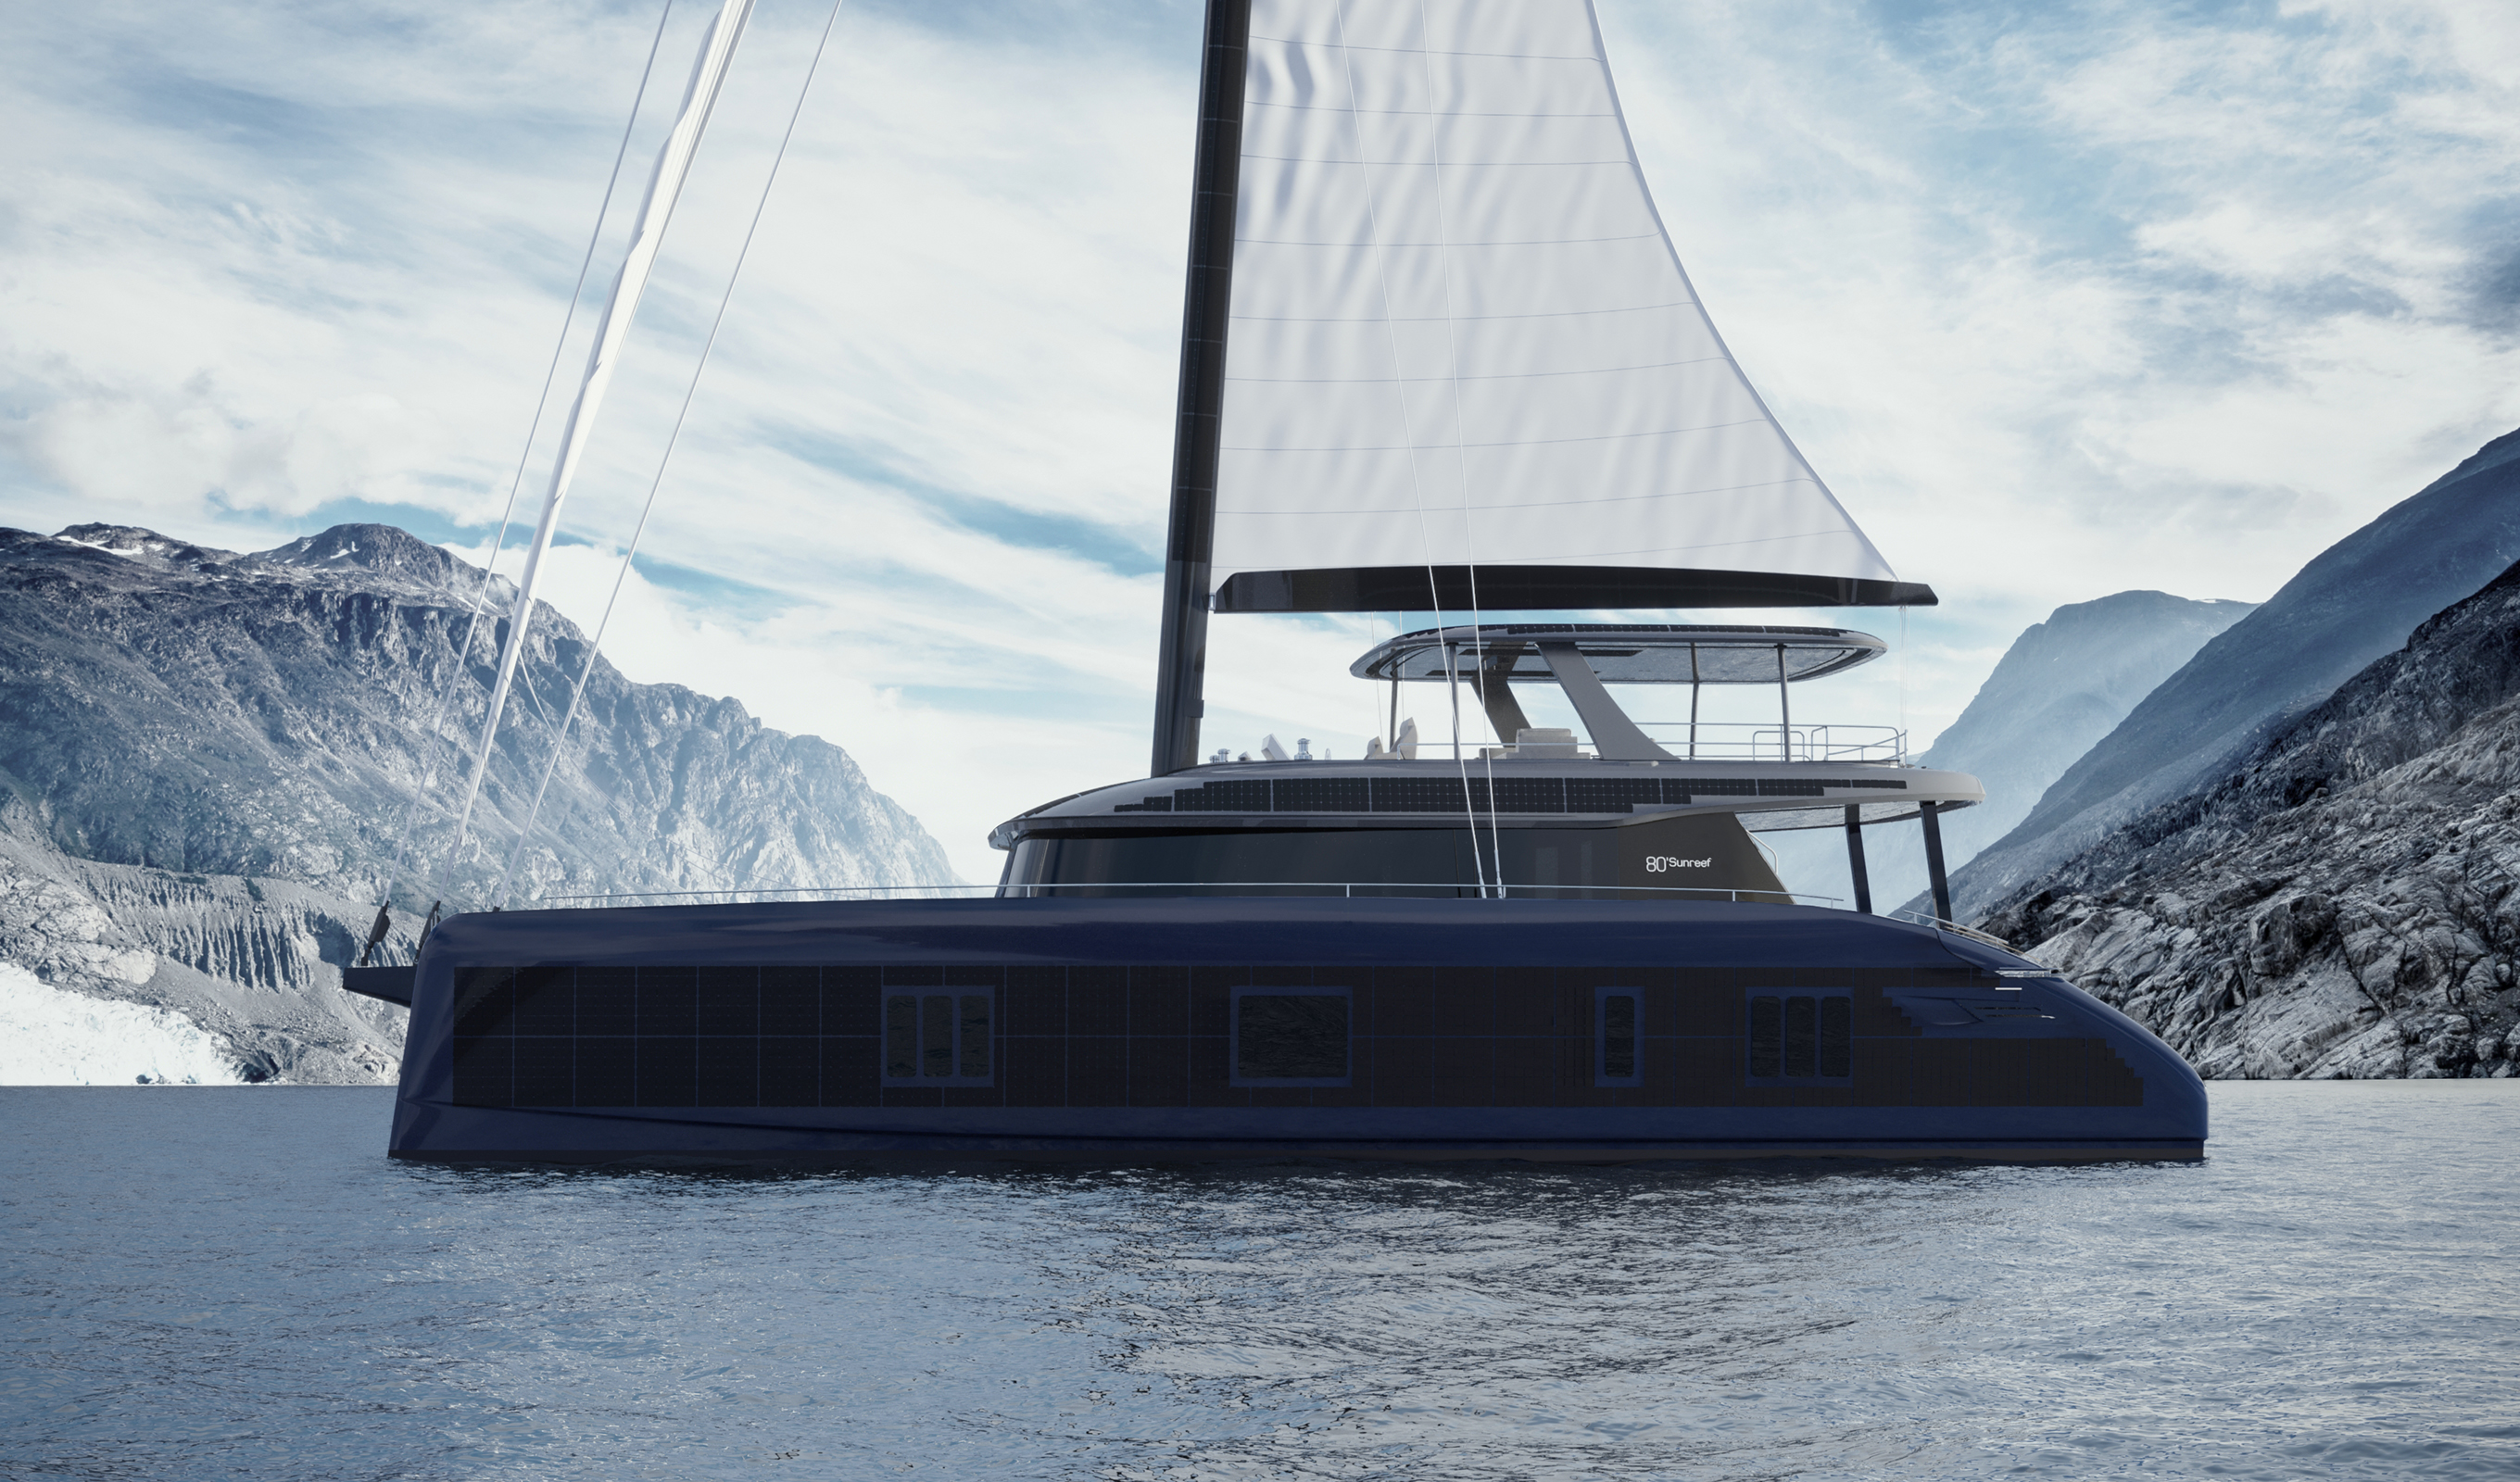 Sunreef 80 Eco en construction : La technologie de demain